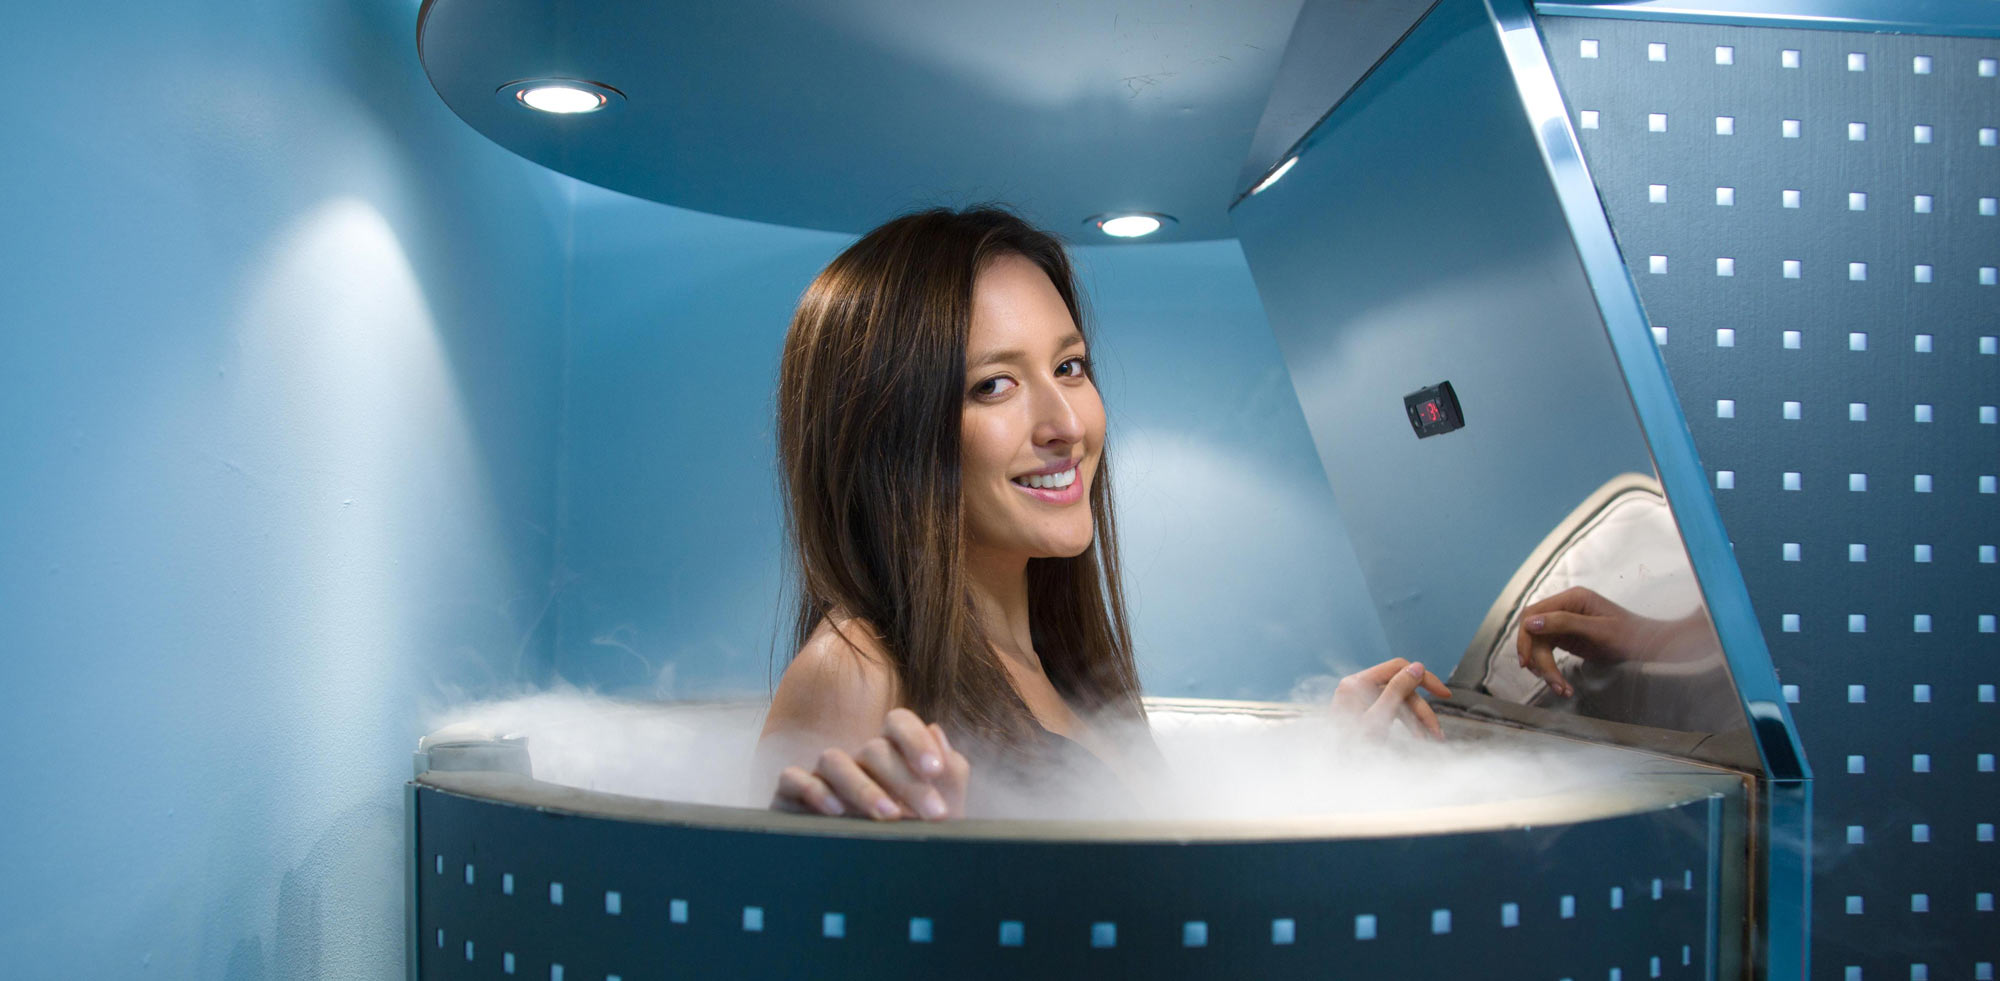 cryotherapy-health-girl